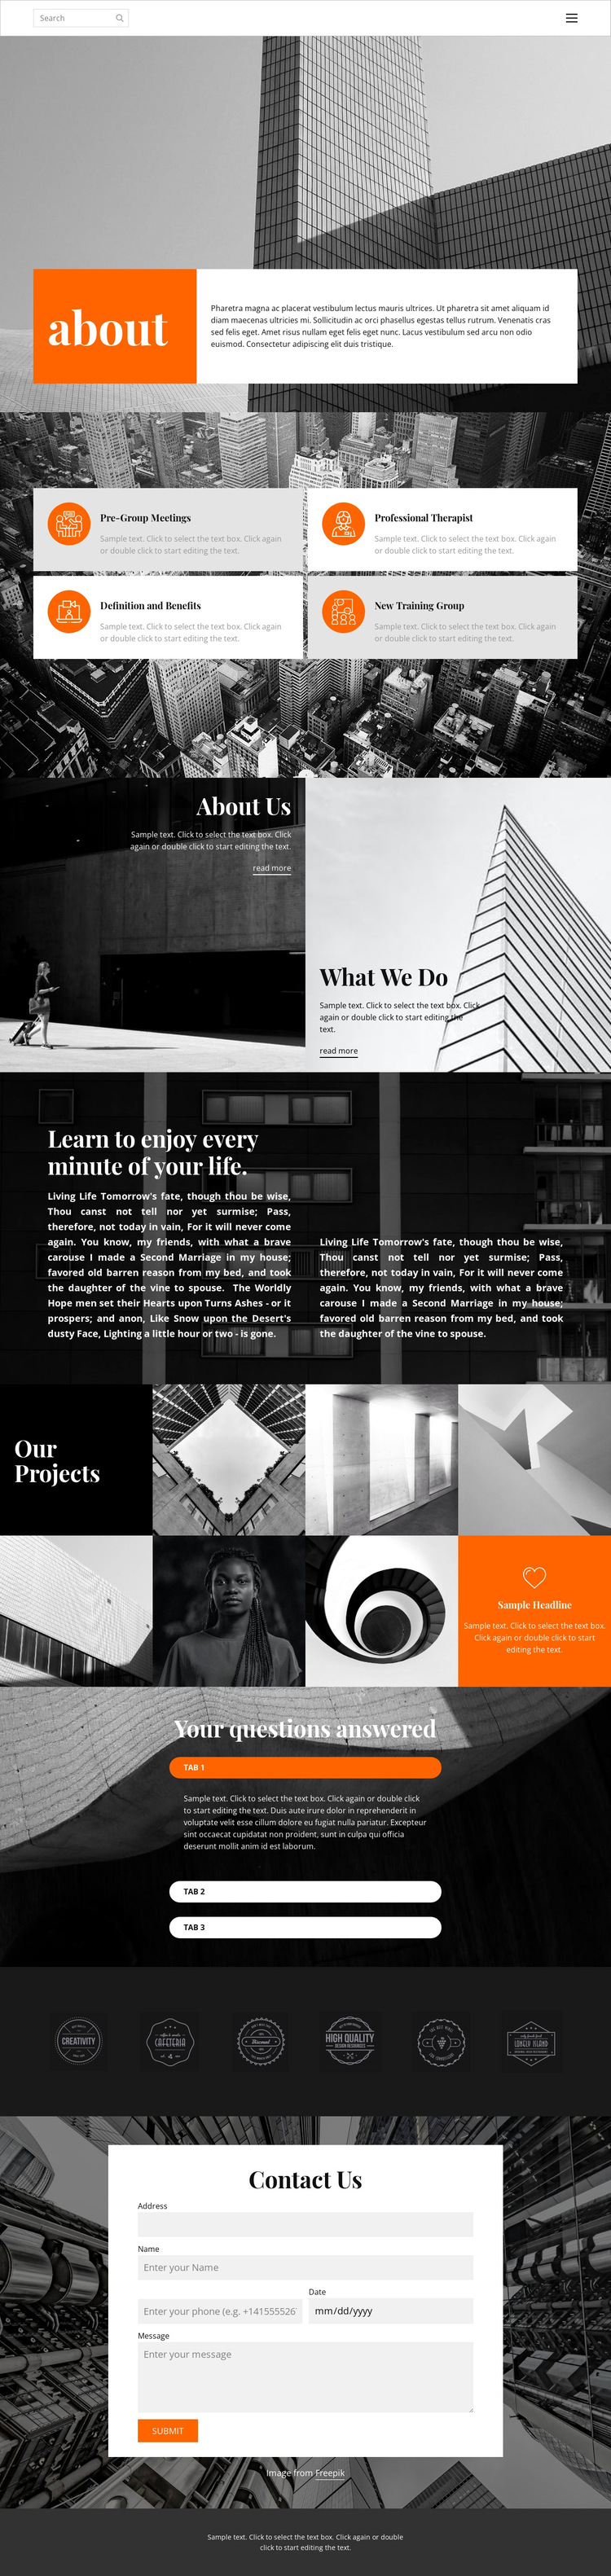 New projects studio HTML5 Template